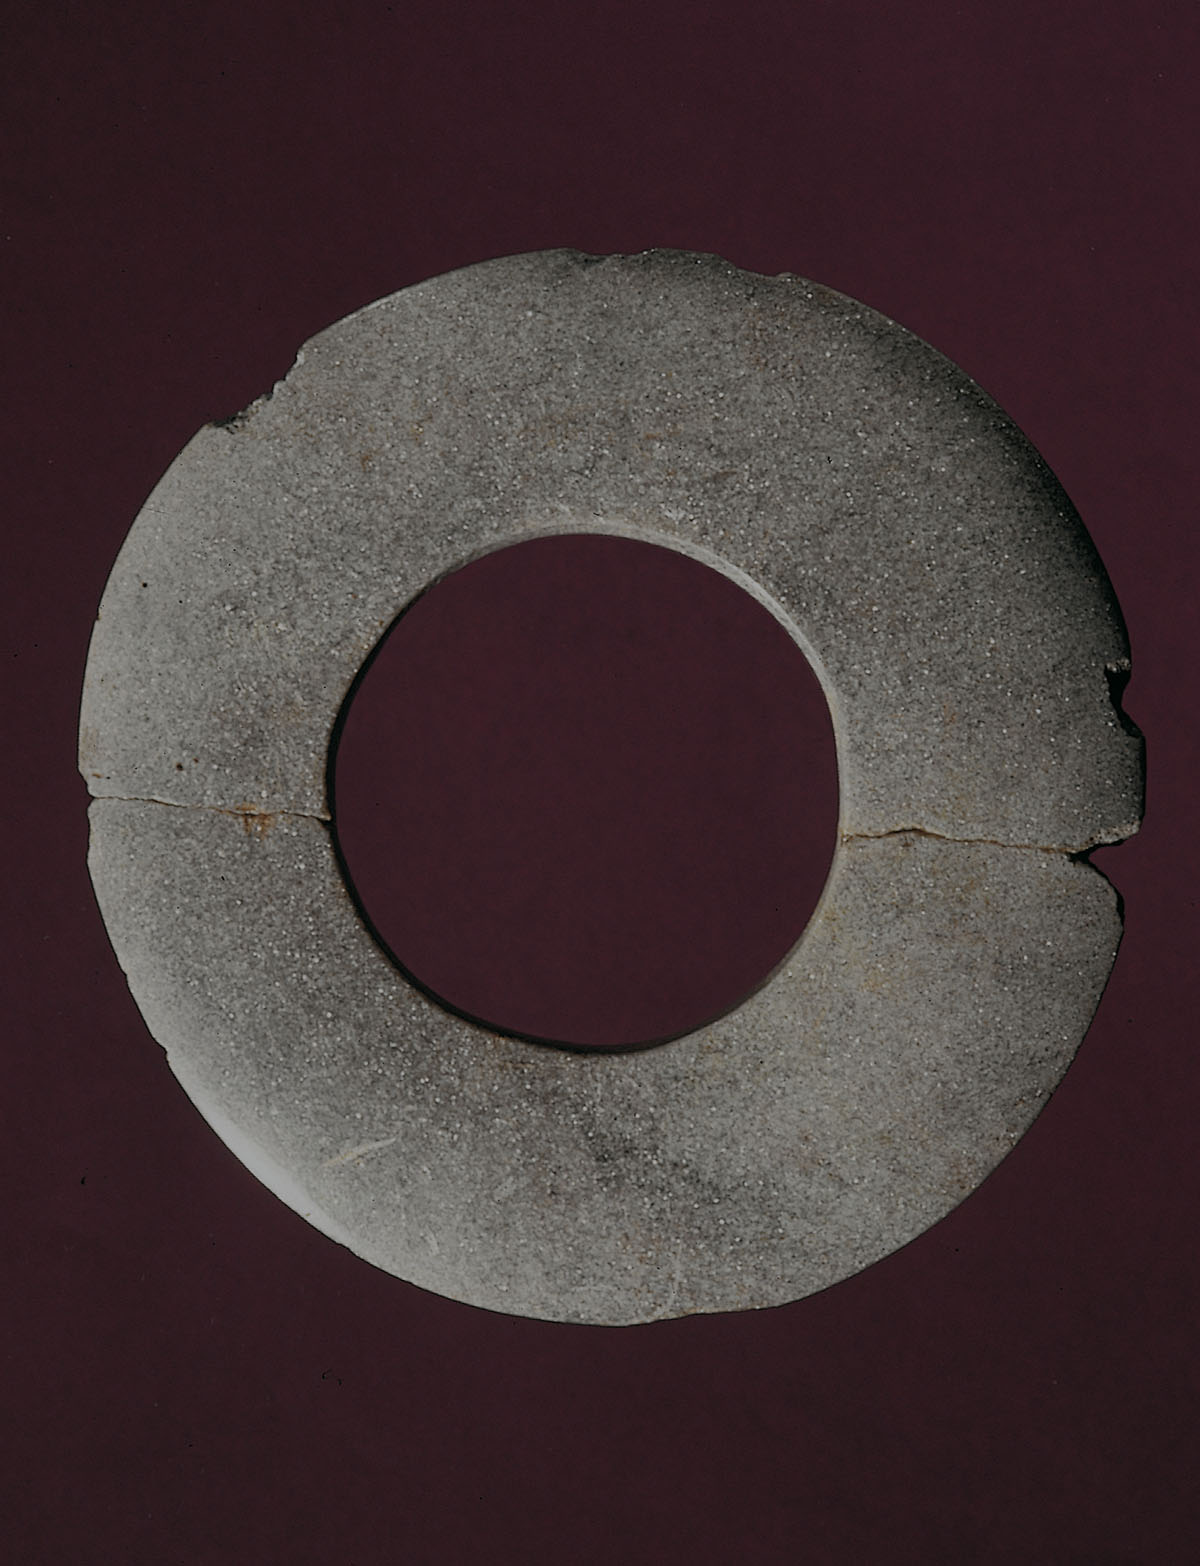 Neolithic Ring - Ring of green stone from the Neolithic site of SammardenchiaPozzuolo del Friuli_Udine